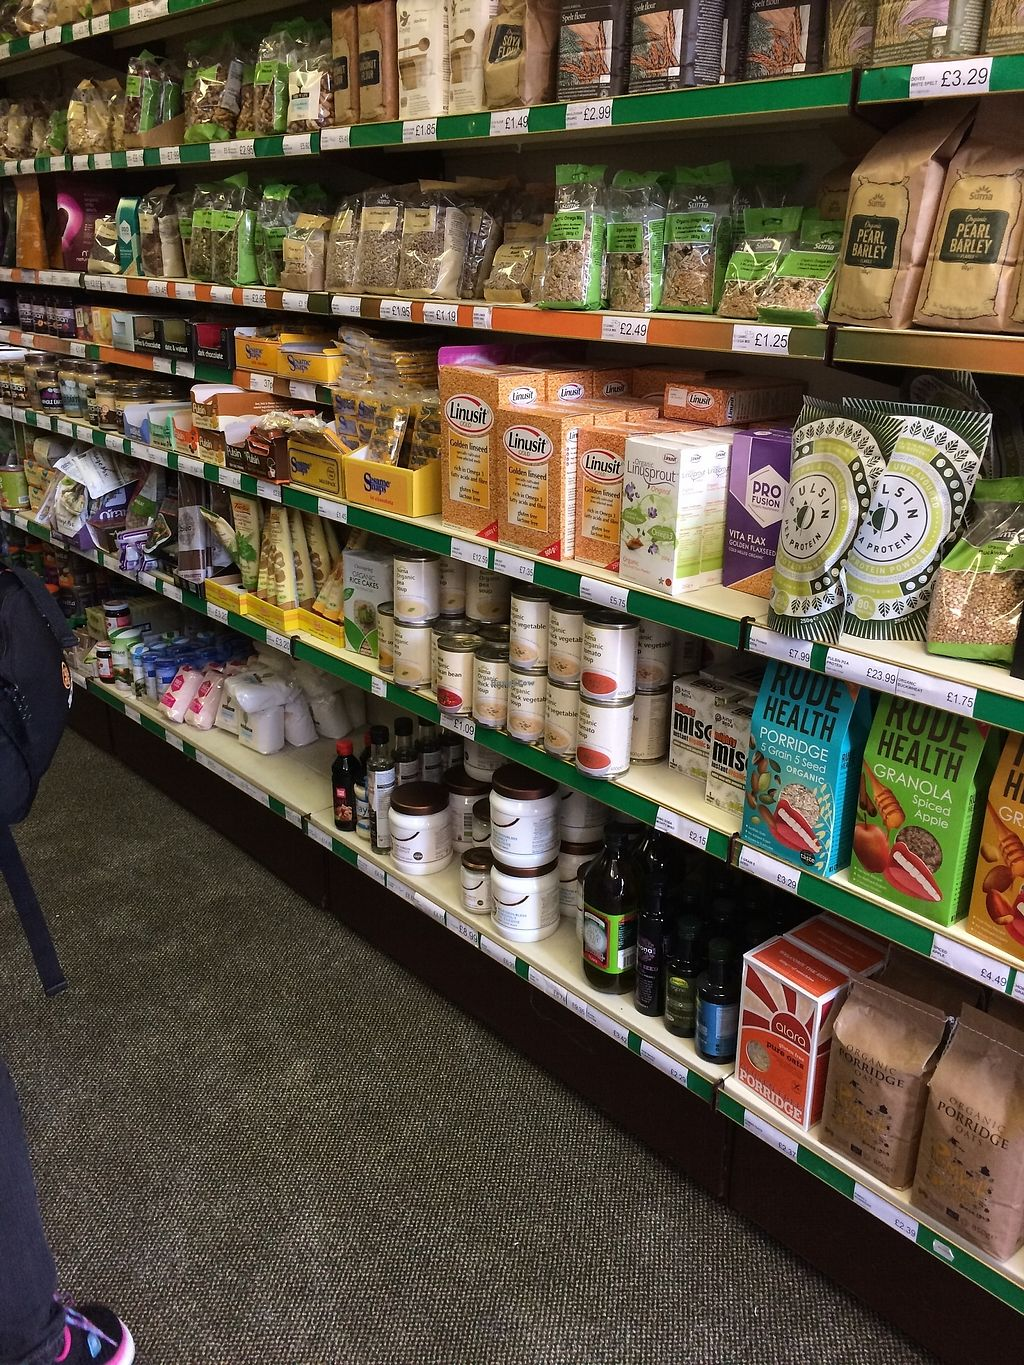 """Photo of Natural Choice  by <a href=""""/members/profile/Hoggy"""">Hoggy</a> <br/>Selection of produce <br/> September 21, 2017  - <a href='/contact/abuse/image/18016/306760'>Report</a>"""